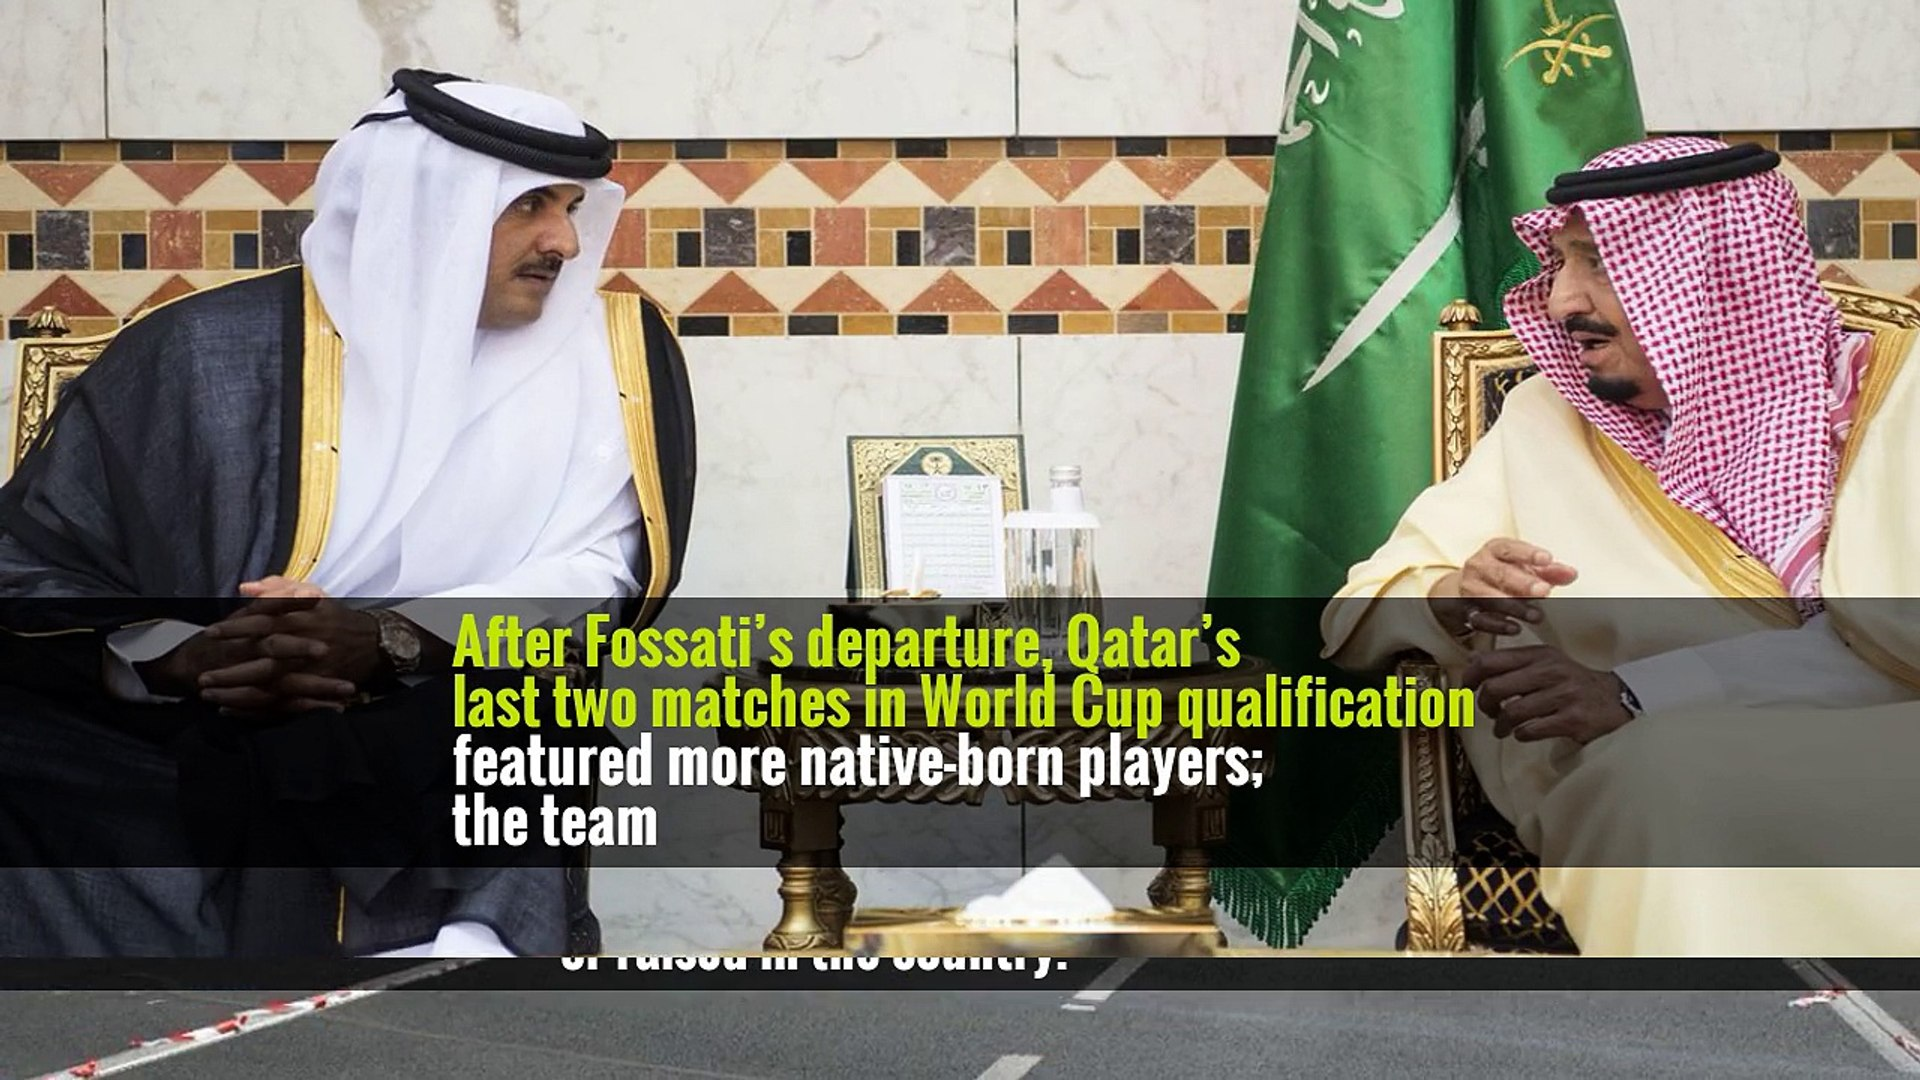 Qatar Has a World Cup Date. It Still Needs a World-Class Team.